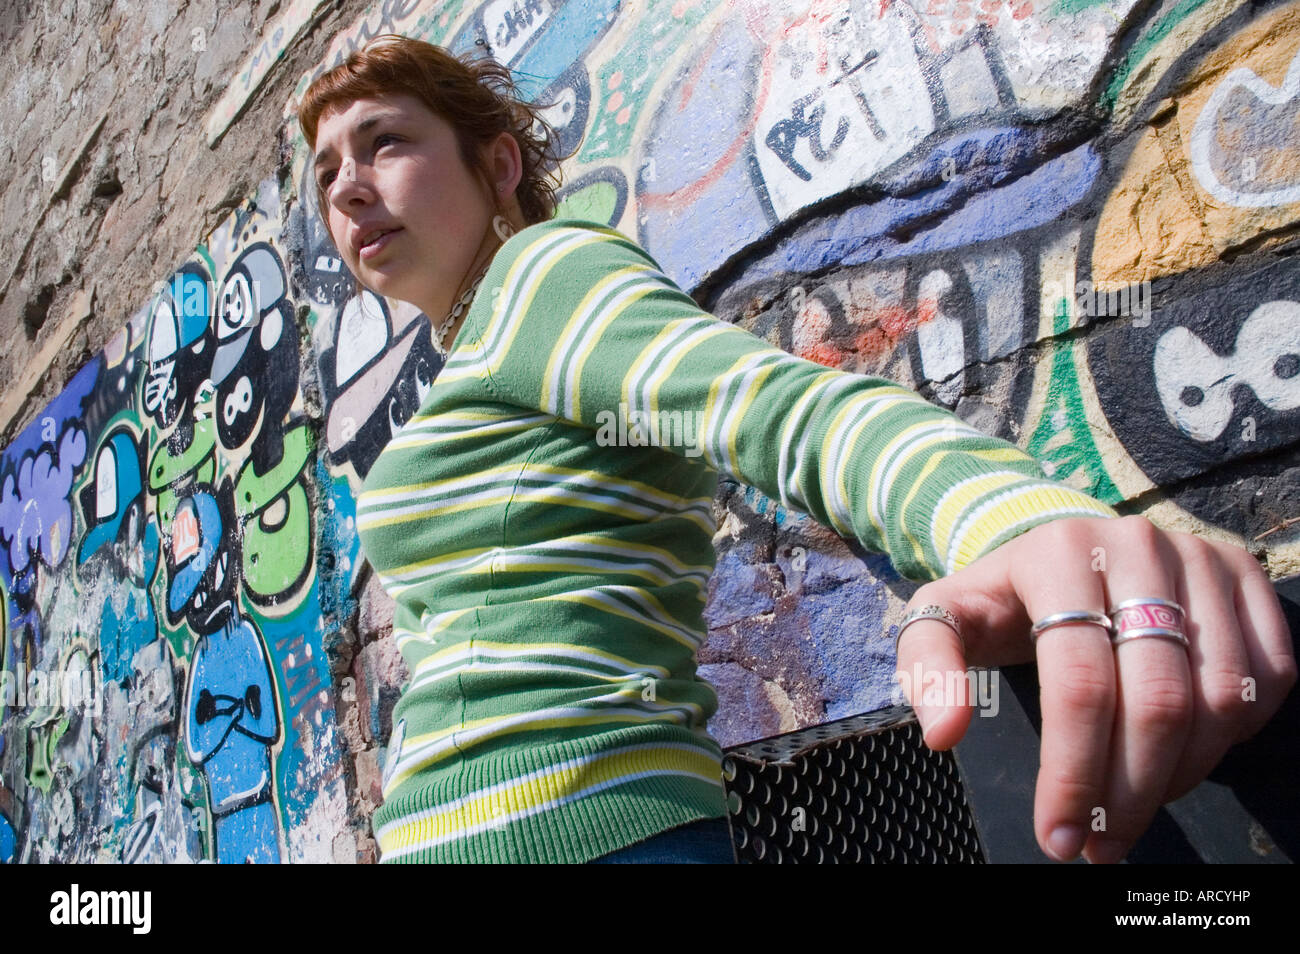 reputable site bc7cb 0d600 Girl with green jersey in the Raval district, Barcelona ...